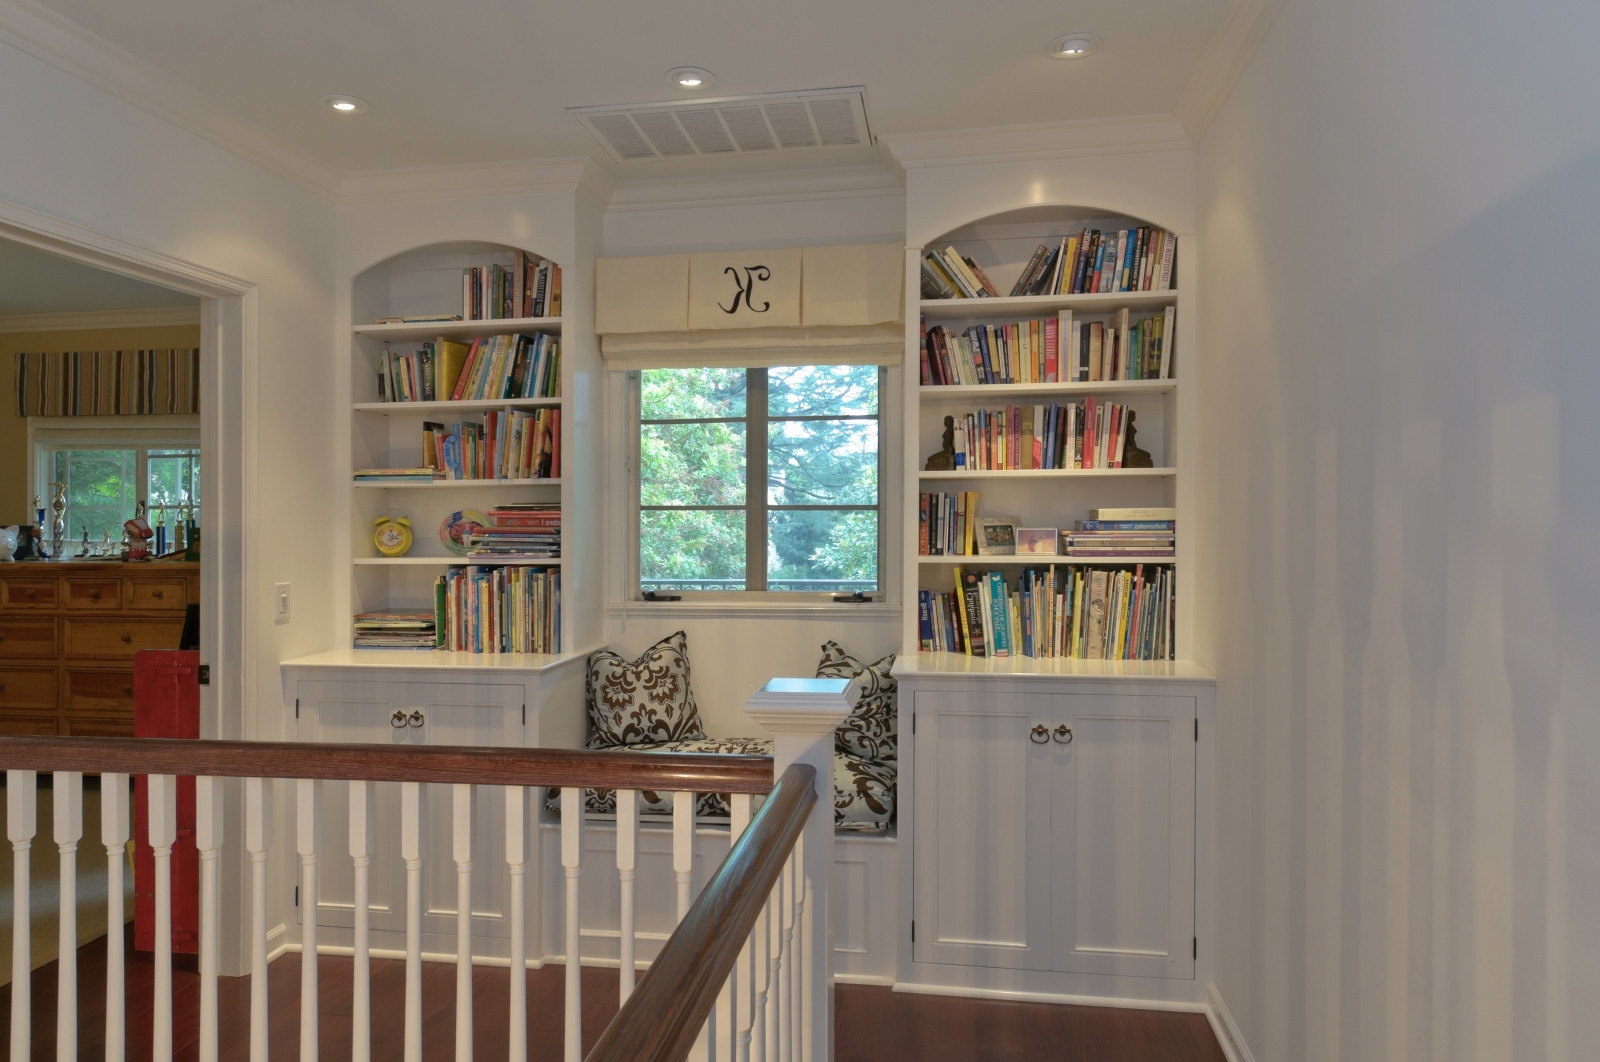 Widely Used Under Window Bookcases For Perfect Minimalist Bay Window Seat Design Ideas With White Tones (View 15 of 15)